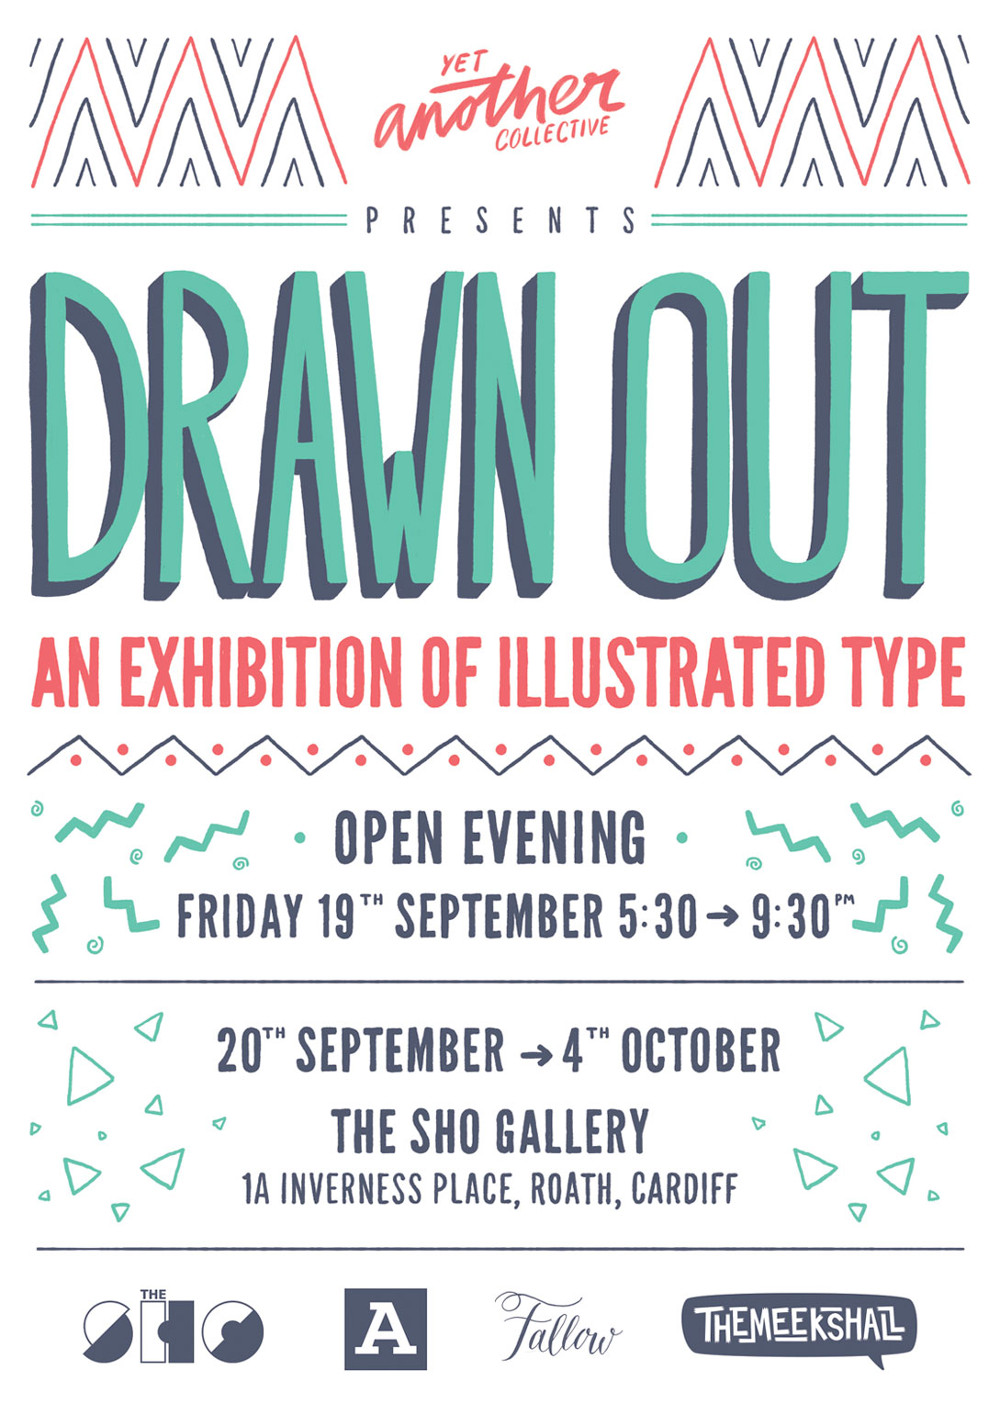 Drawn Out exhibition details